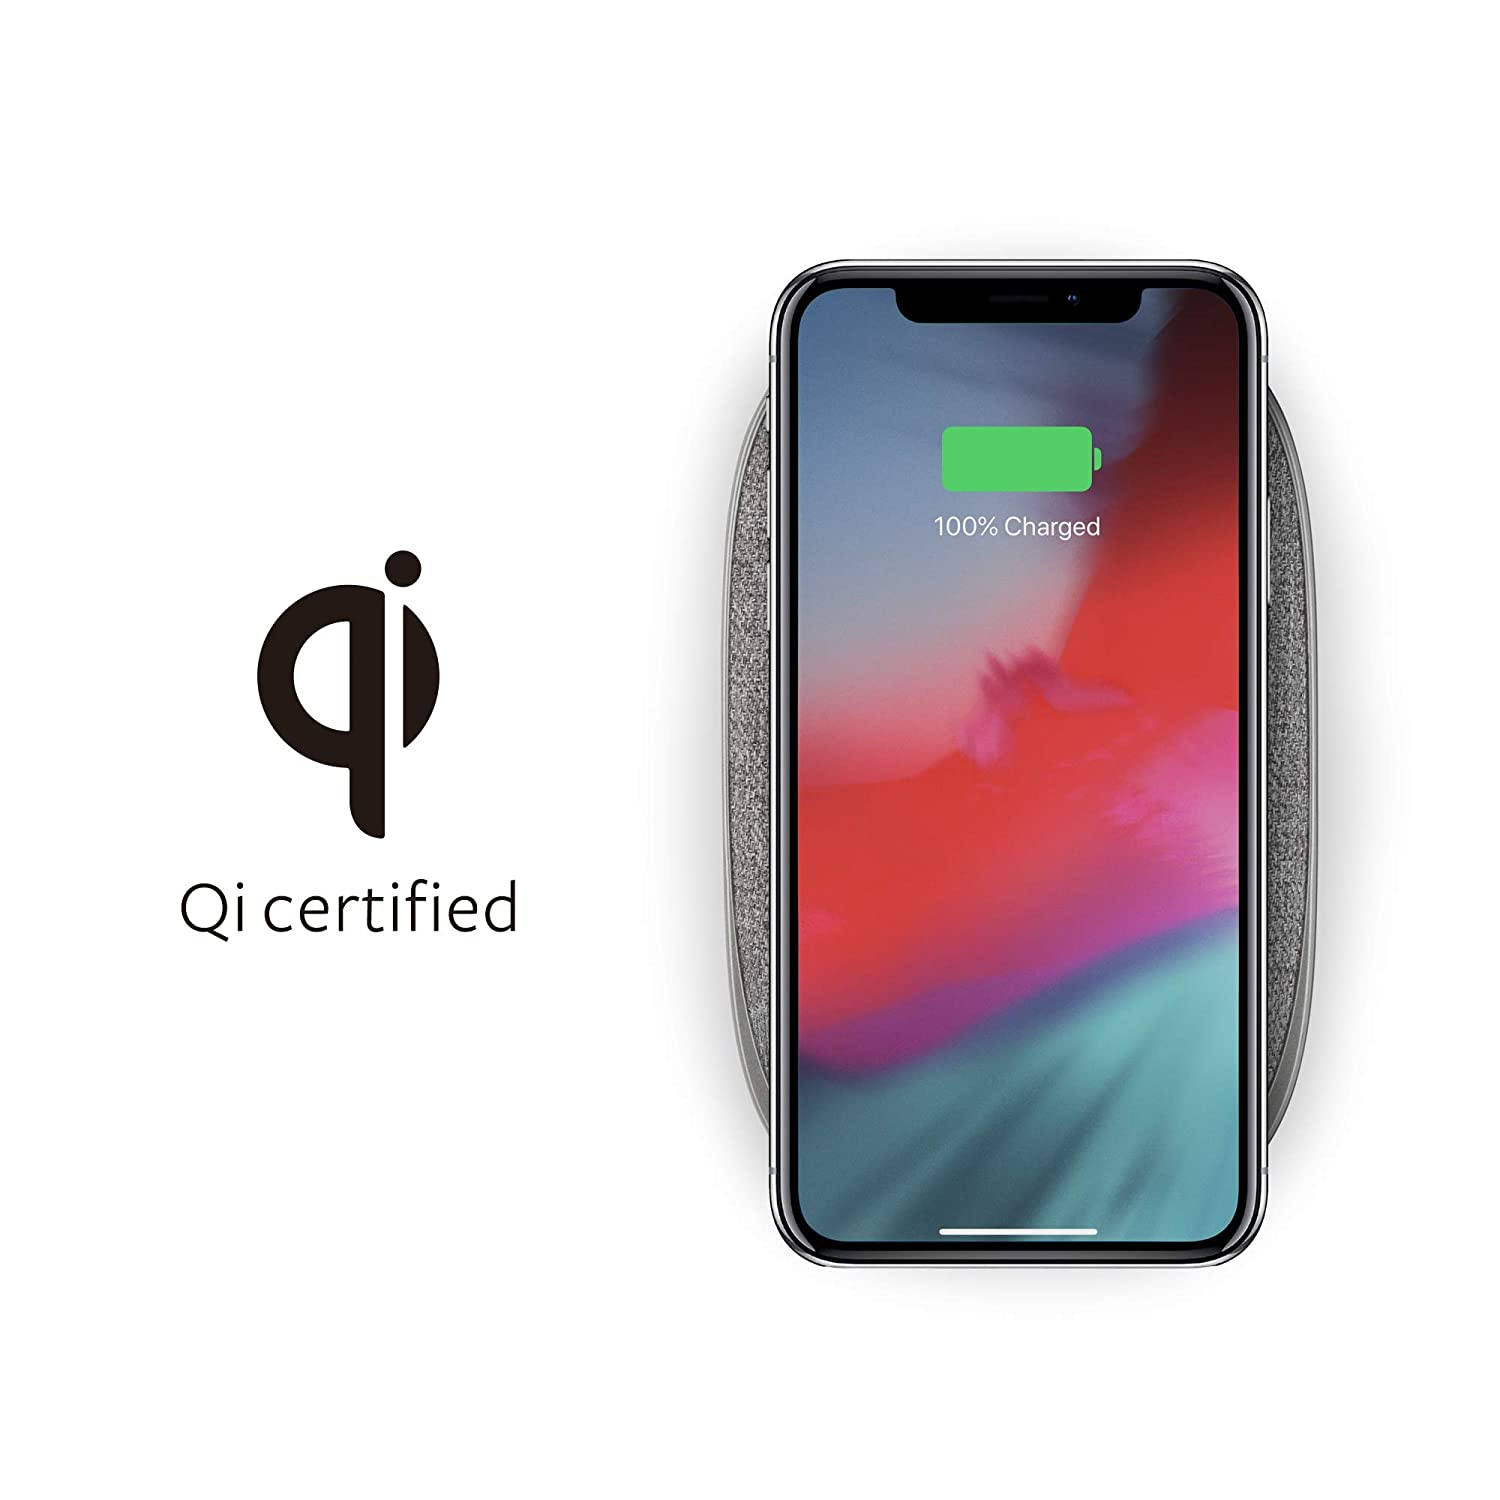 Moshi Porto Q 5K Portable Battery 5, 000 mAh with Built-in Wireless Charger Pad with Qi, with USB-C and USB-A, No Wall Charger Include